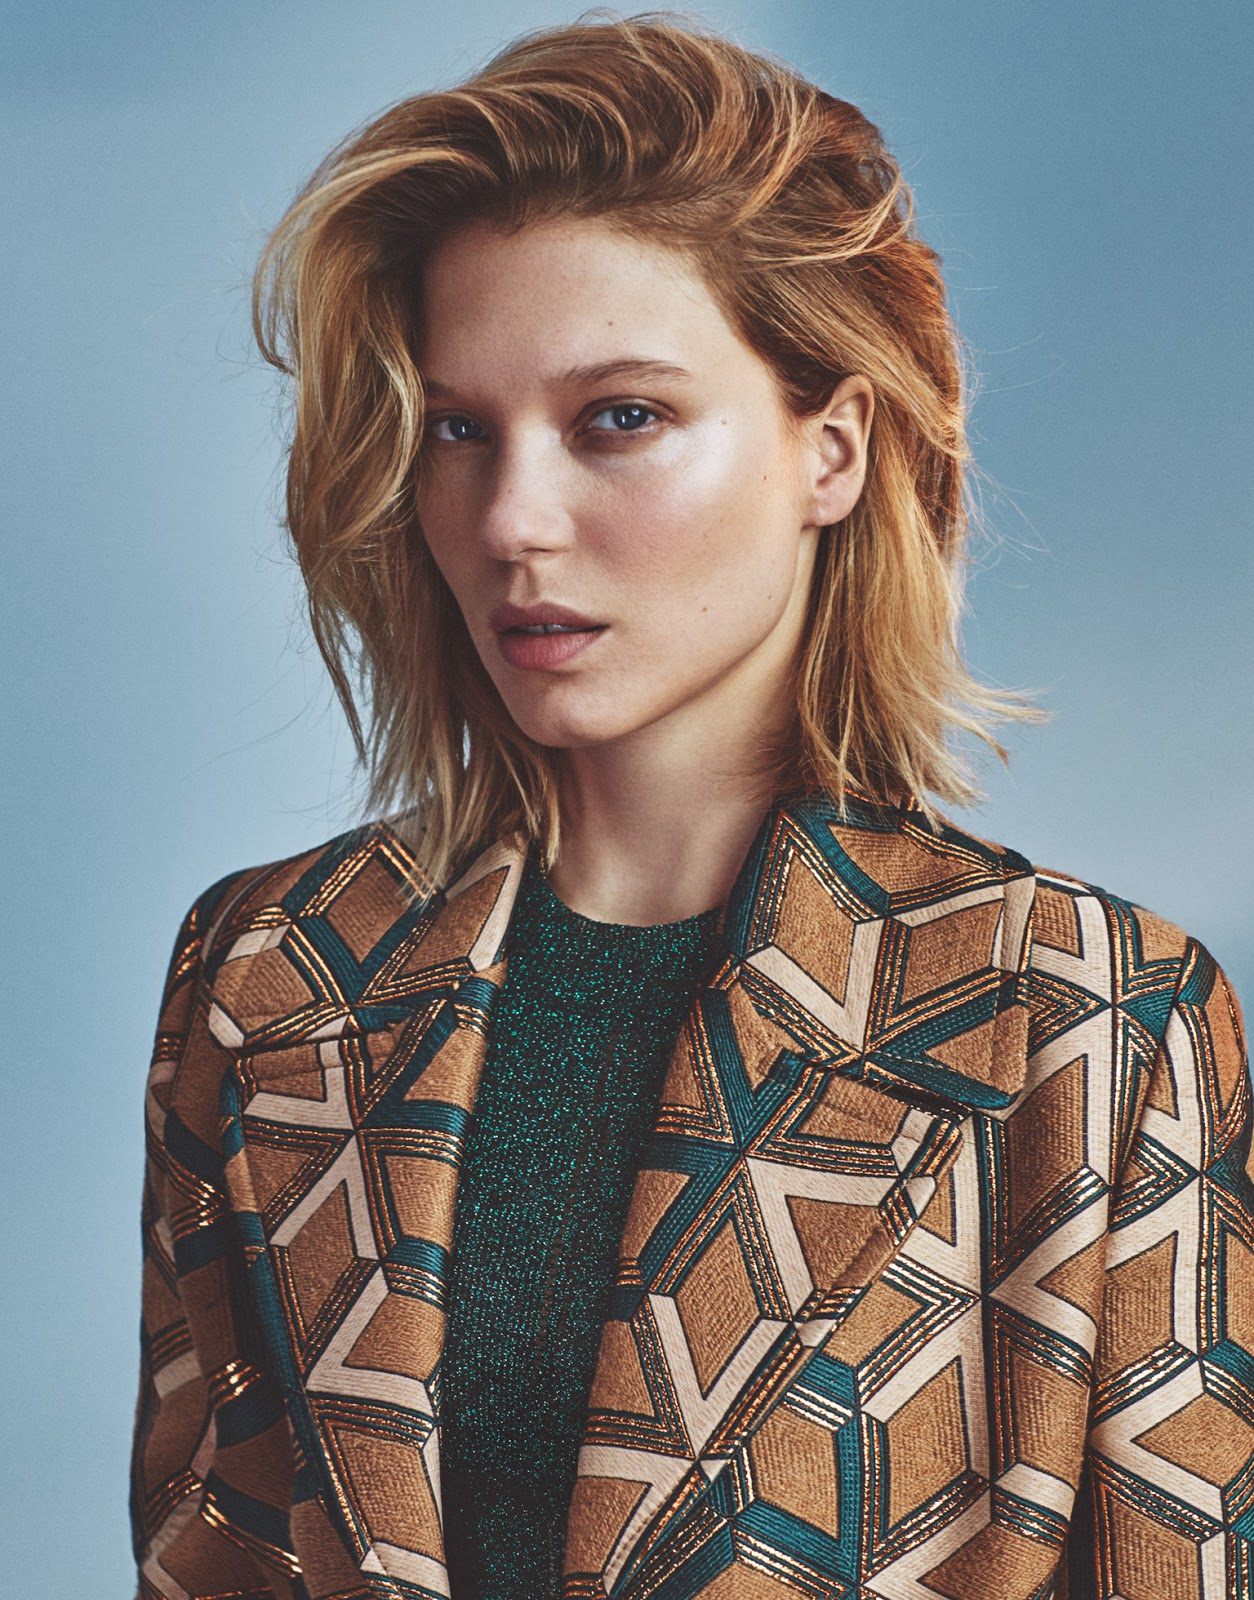 l233a seydoux in the edit magazine november 5th 2015 by